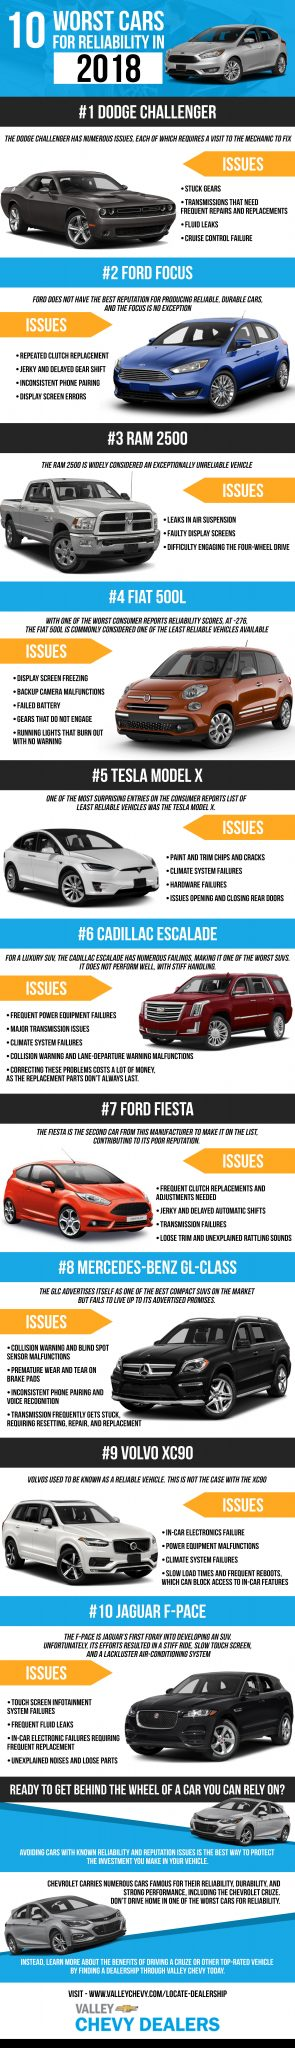 10 Worst Cars for Reliability in 2018 Infographic